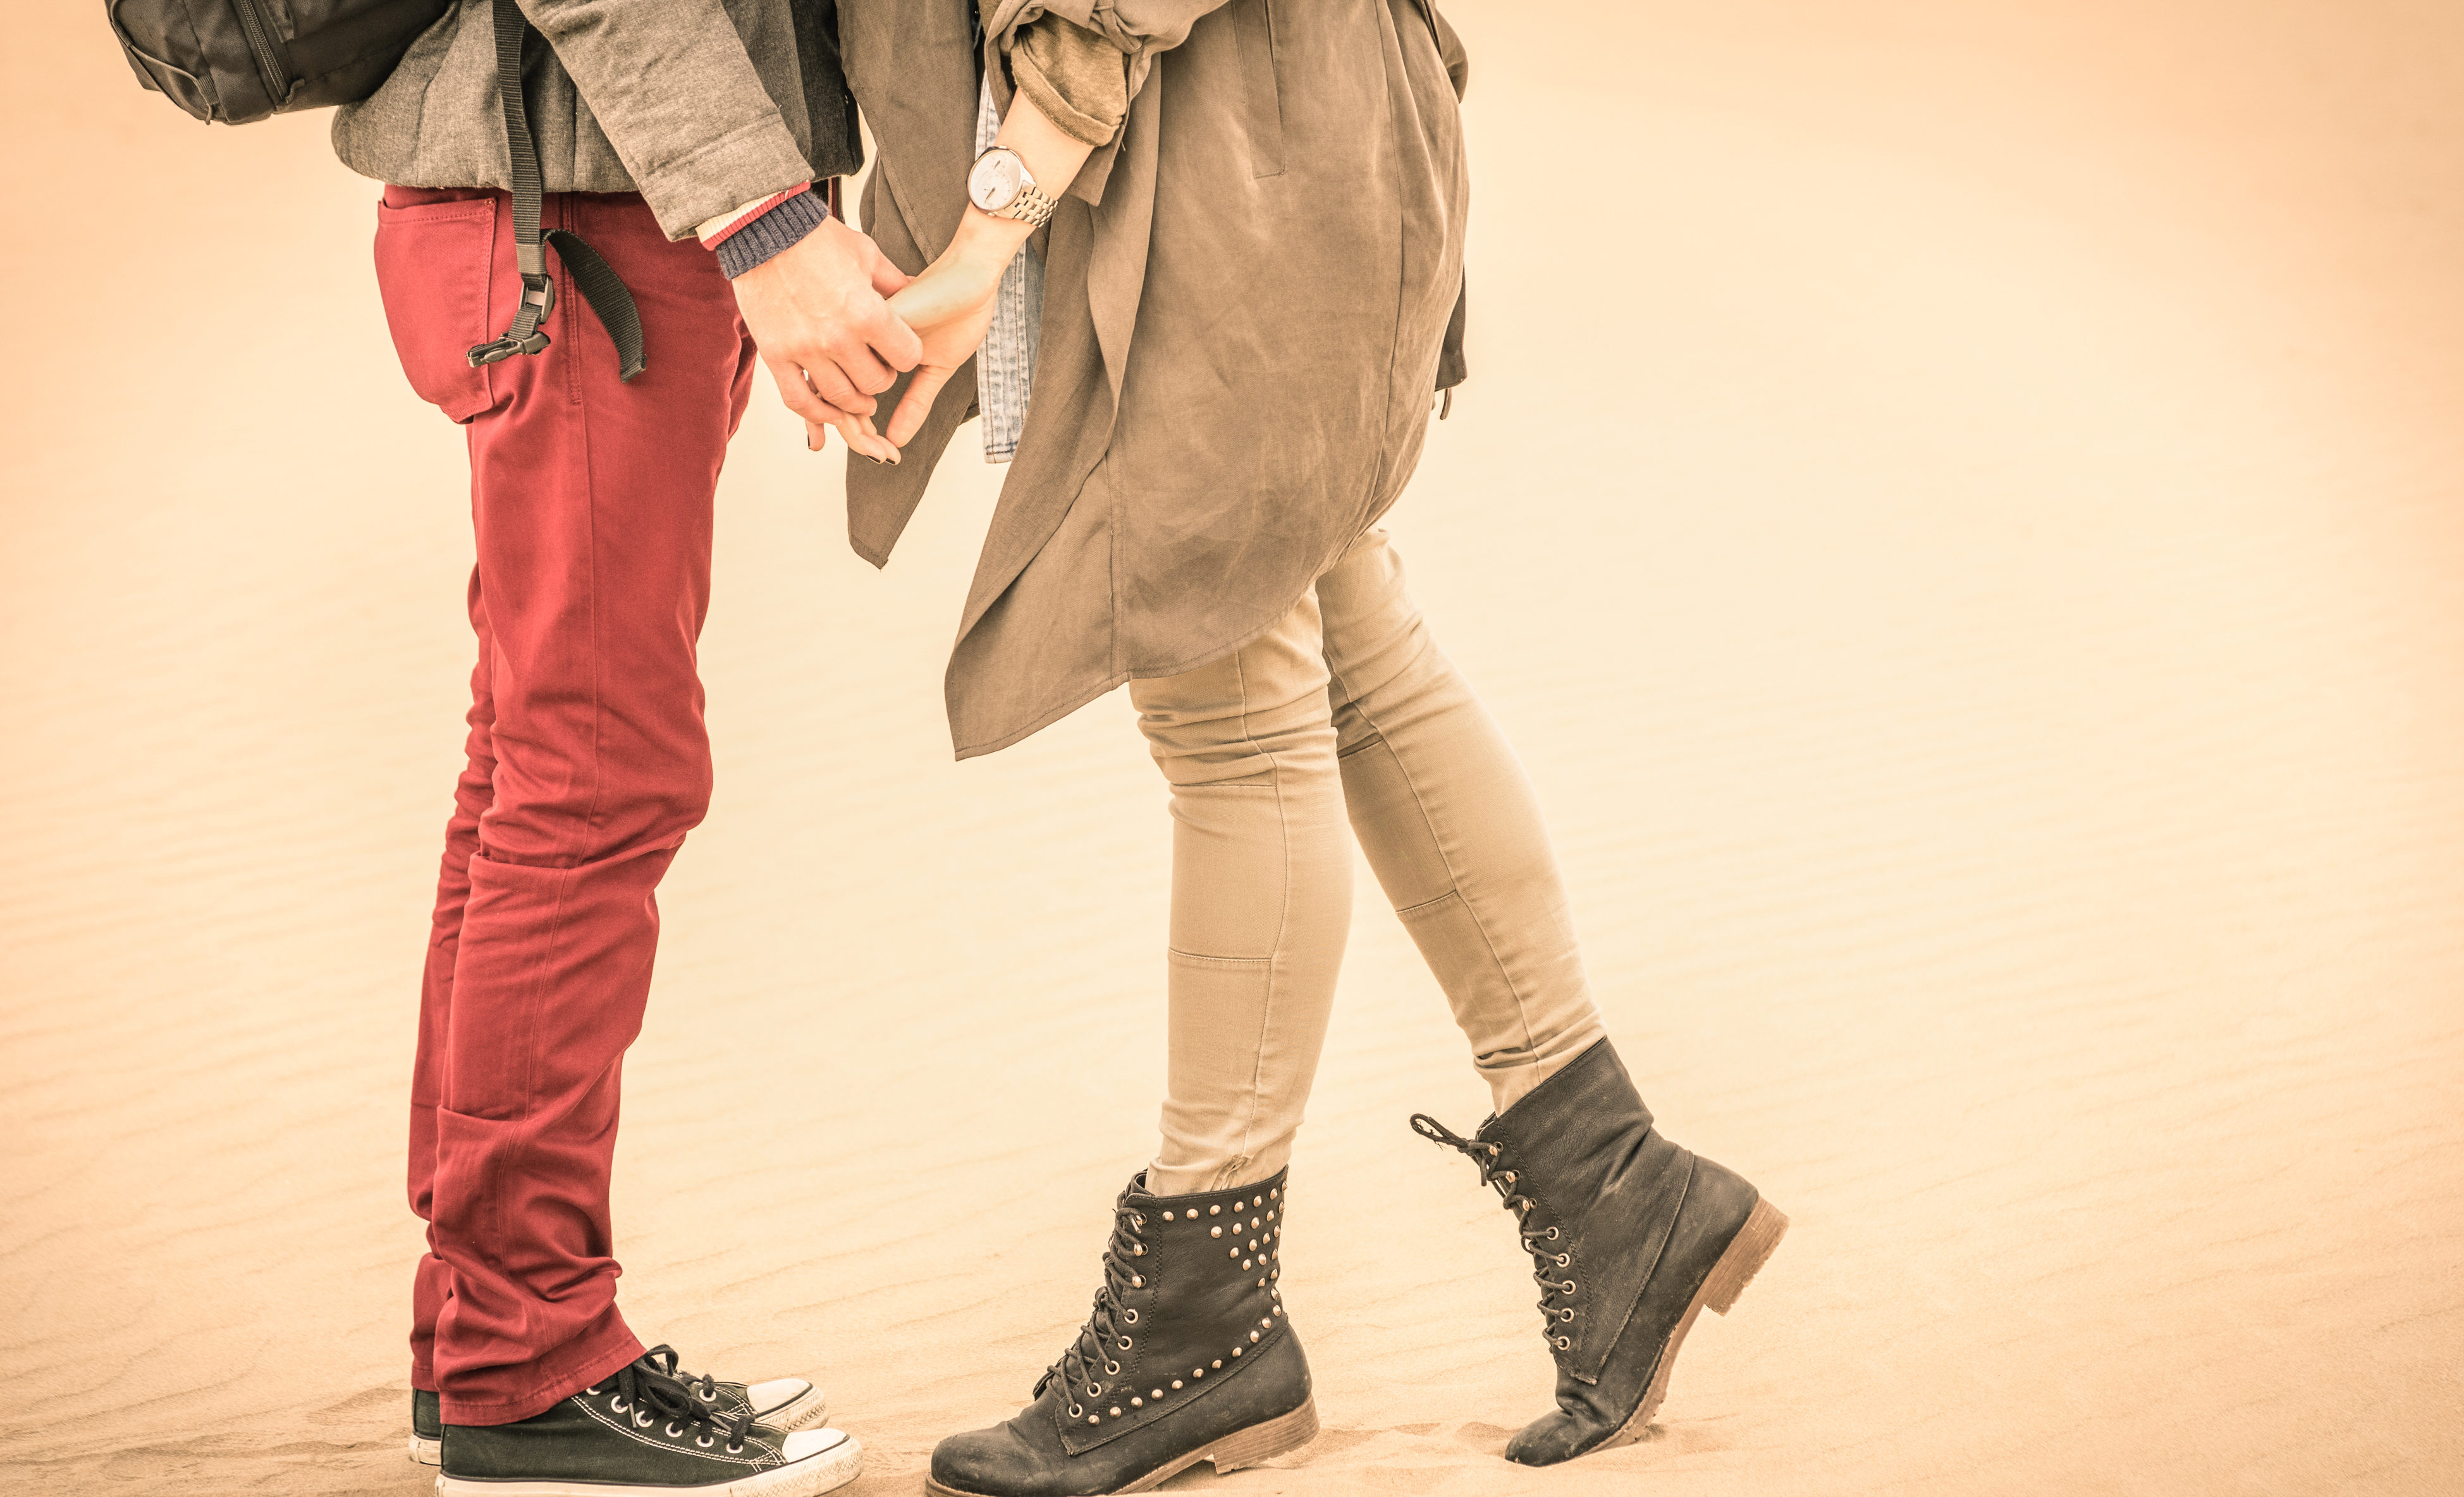 sexual abuse in teenage relationships